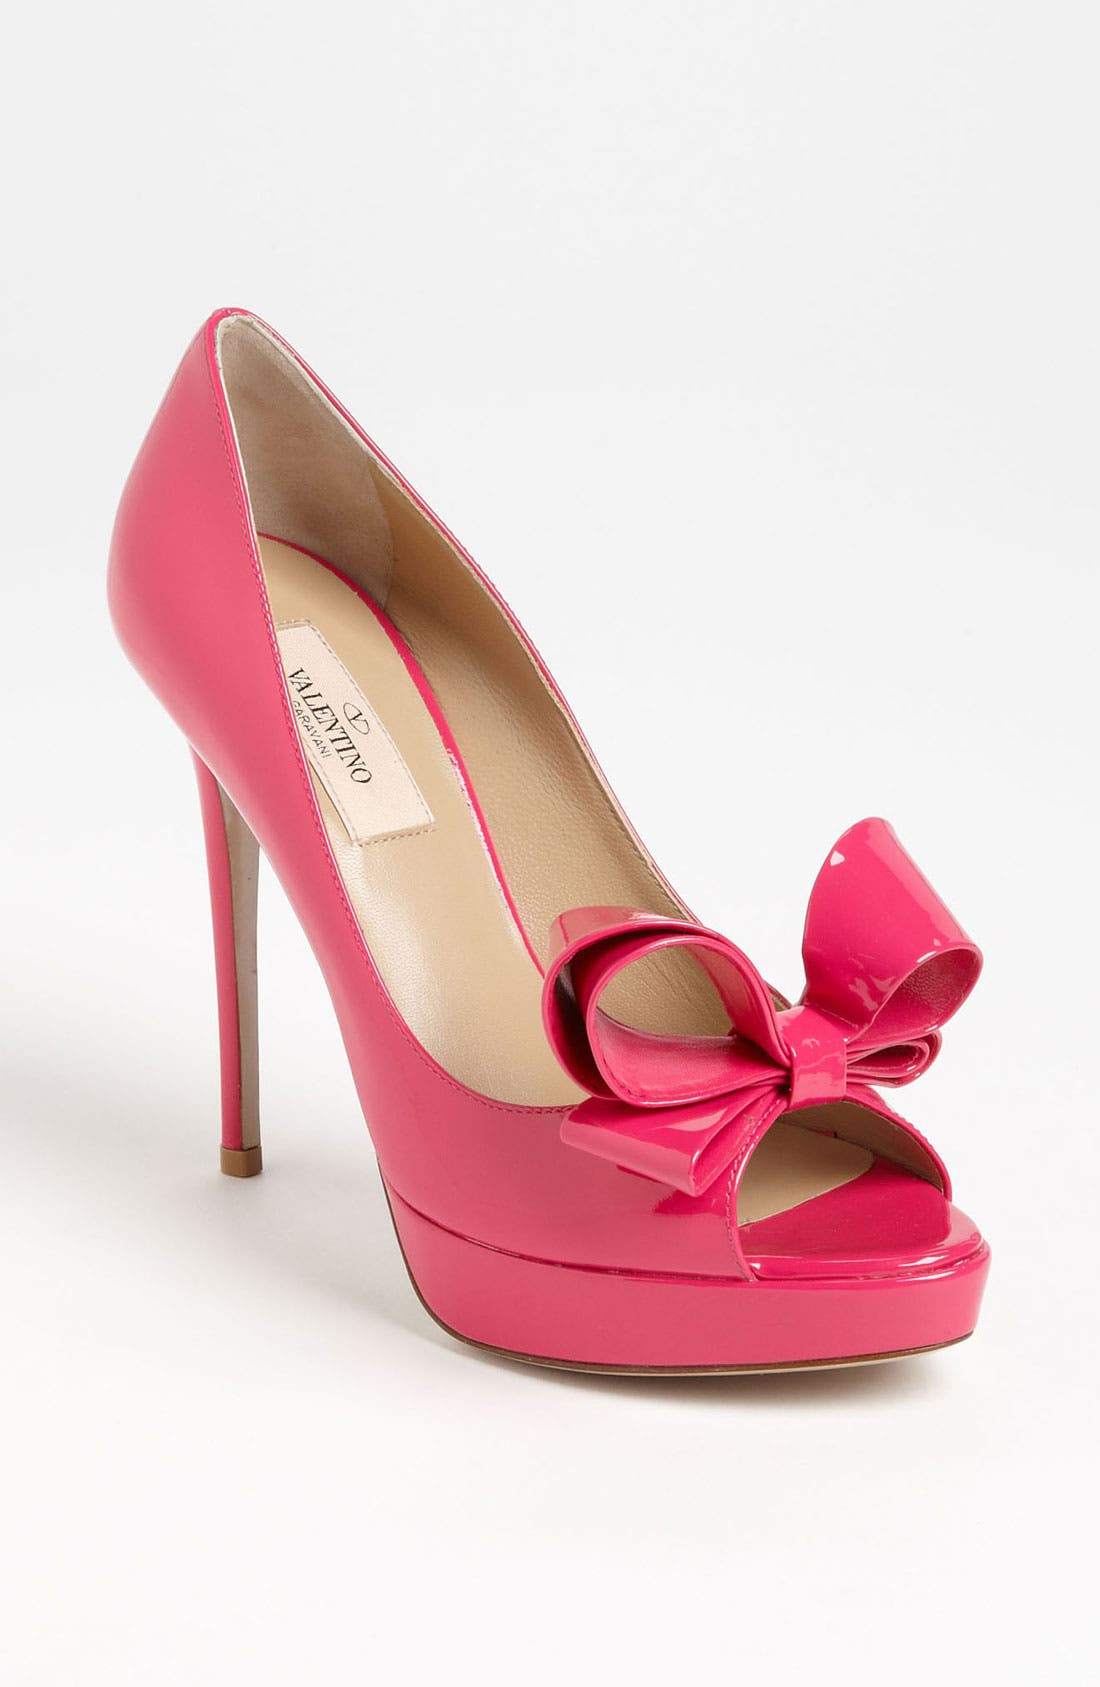 Main Image - Valentino Couture Bow Platform Pump (Women)